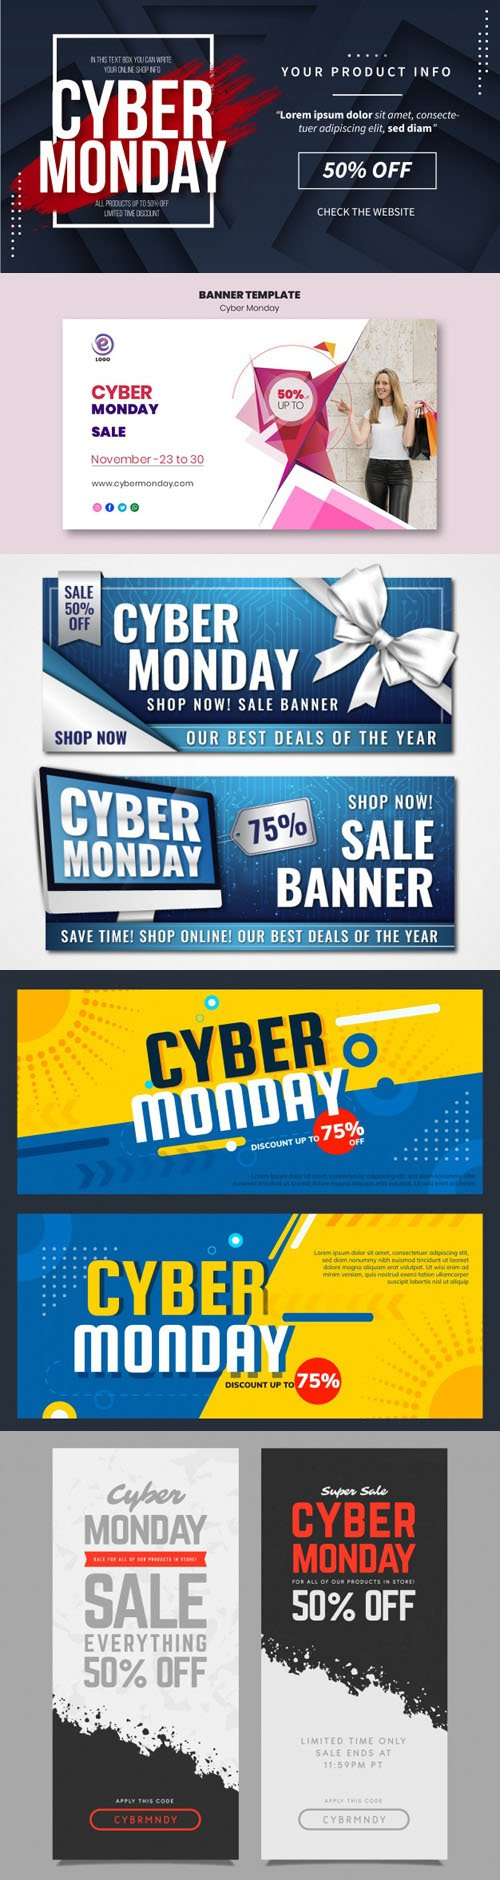 Cyber Monday 2019 Banners Vector Colletion Vol.2